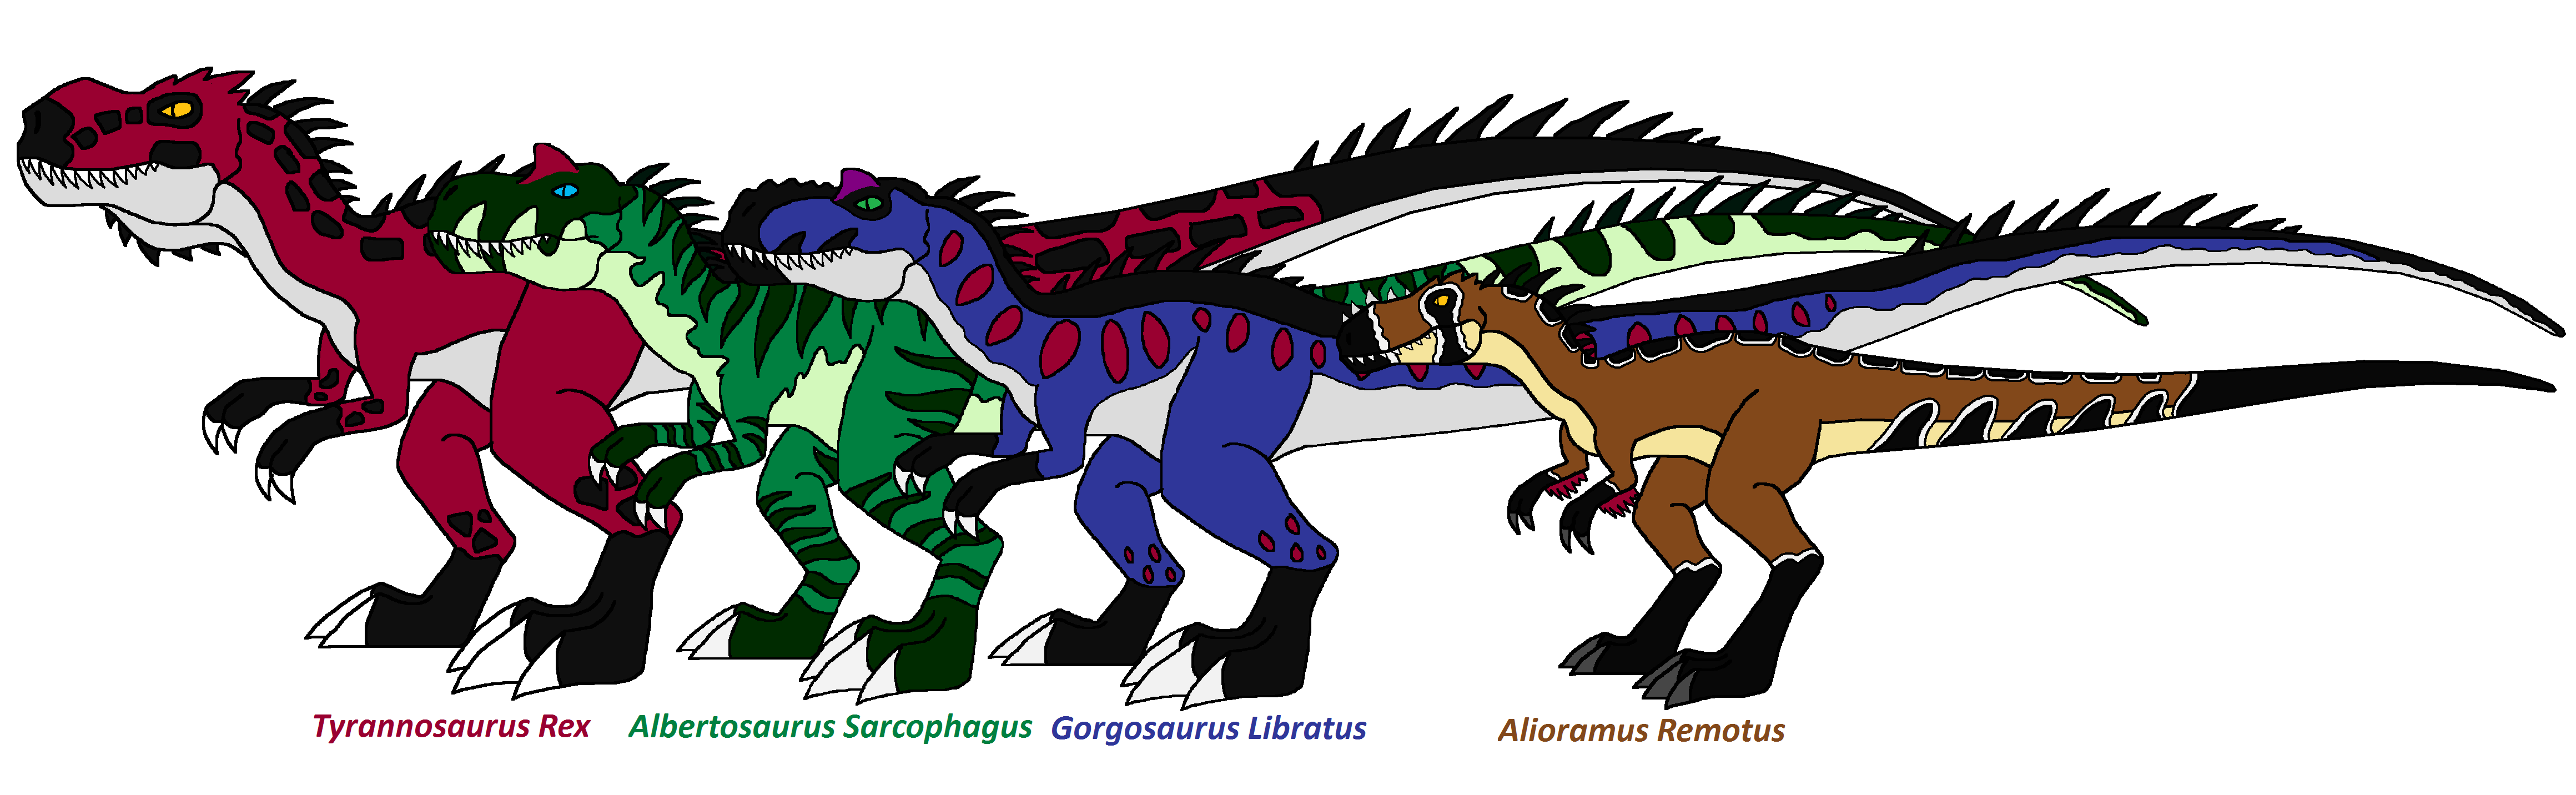 Spinosaurus Size Comparison | www.imgkid.com - The Image ...